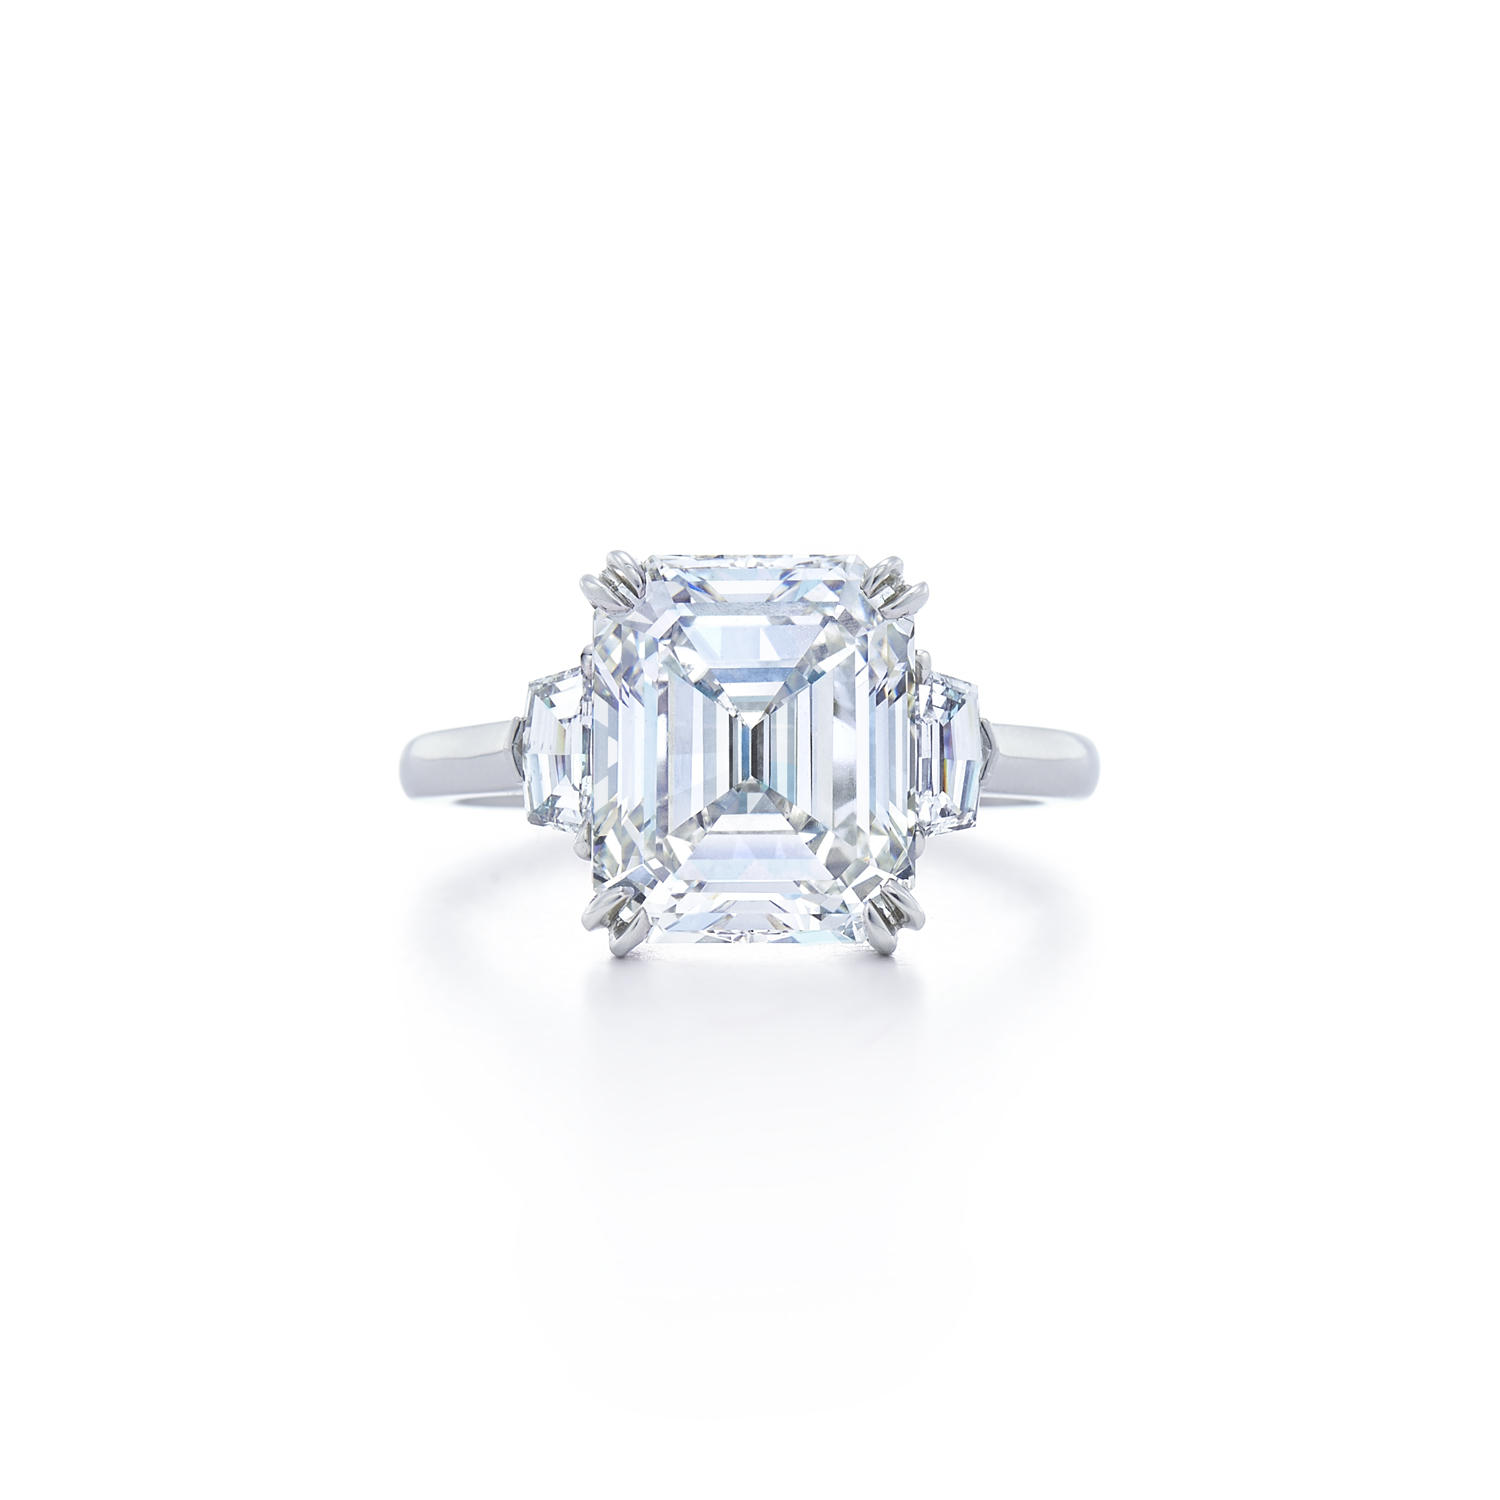 patterson finished mark kwiat rings markpatterson diamond cut solitaire ashoka bezel product engagement